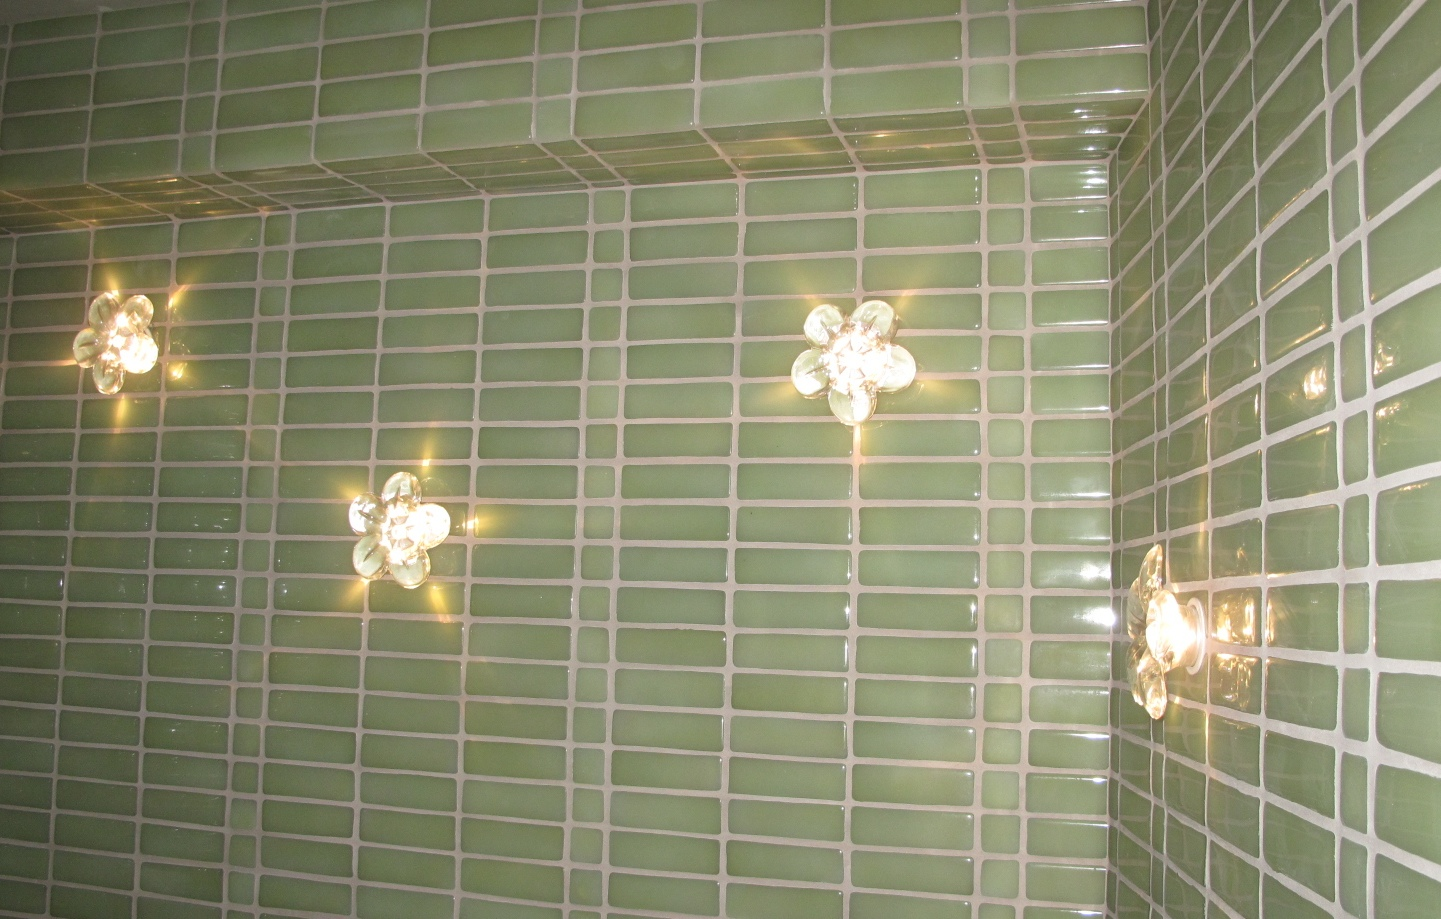 Bathroom Tile and Lights